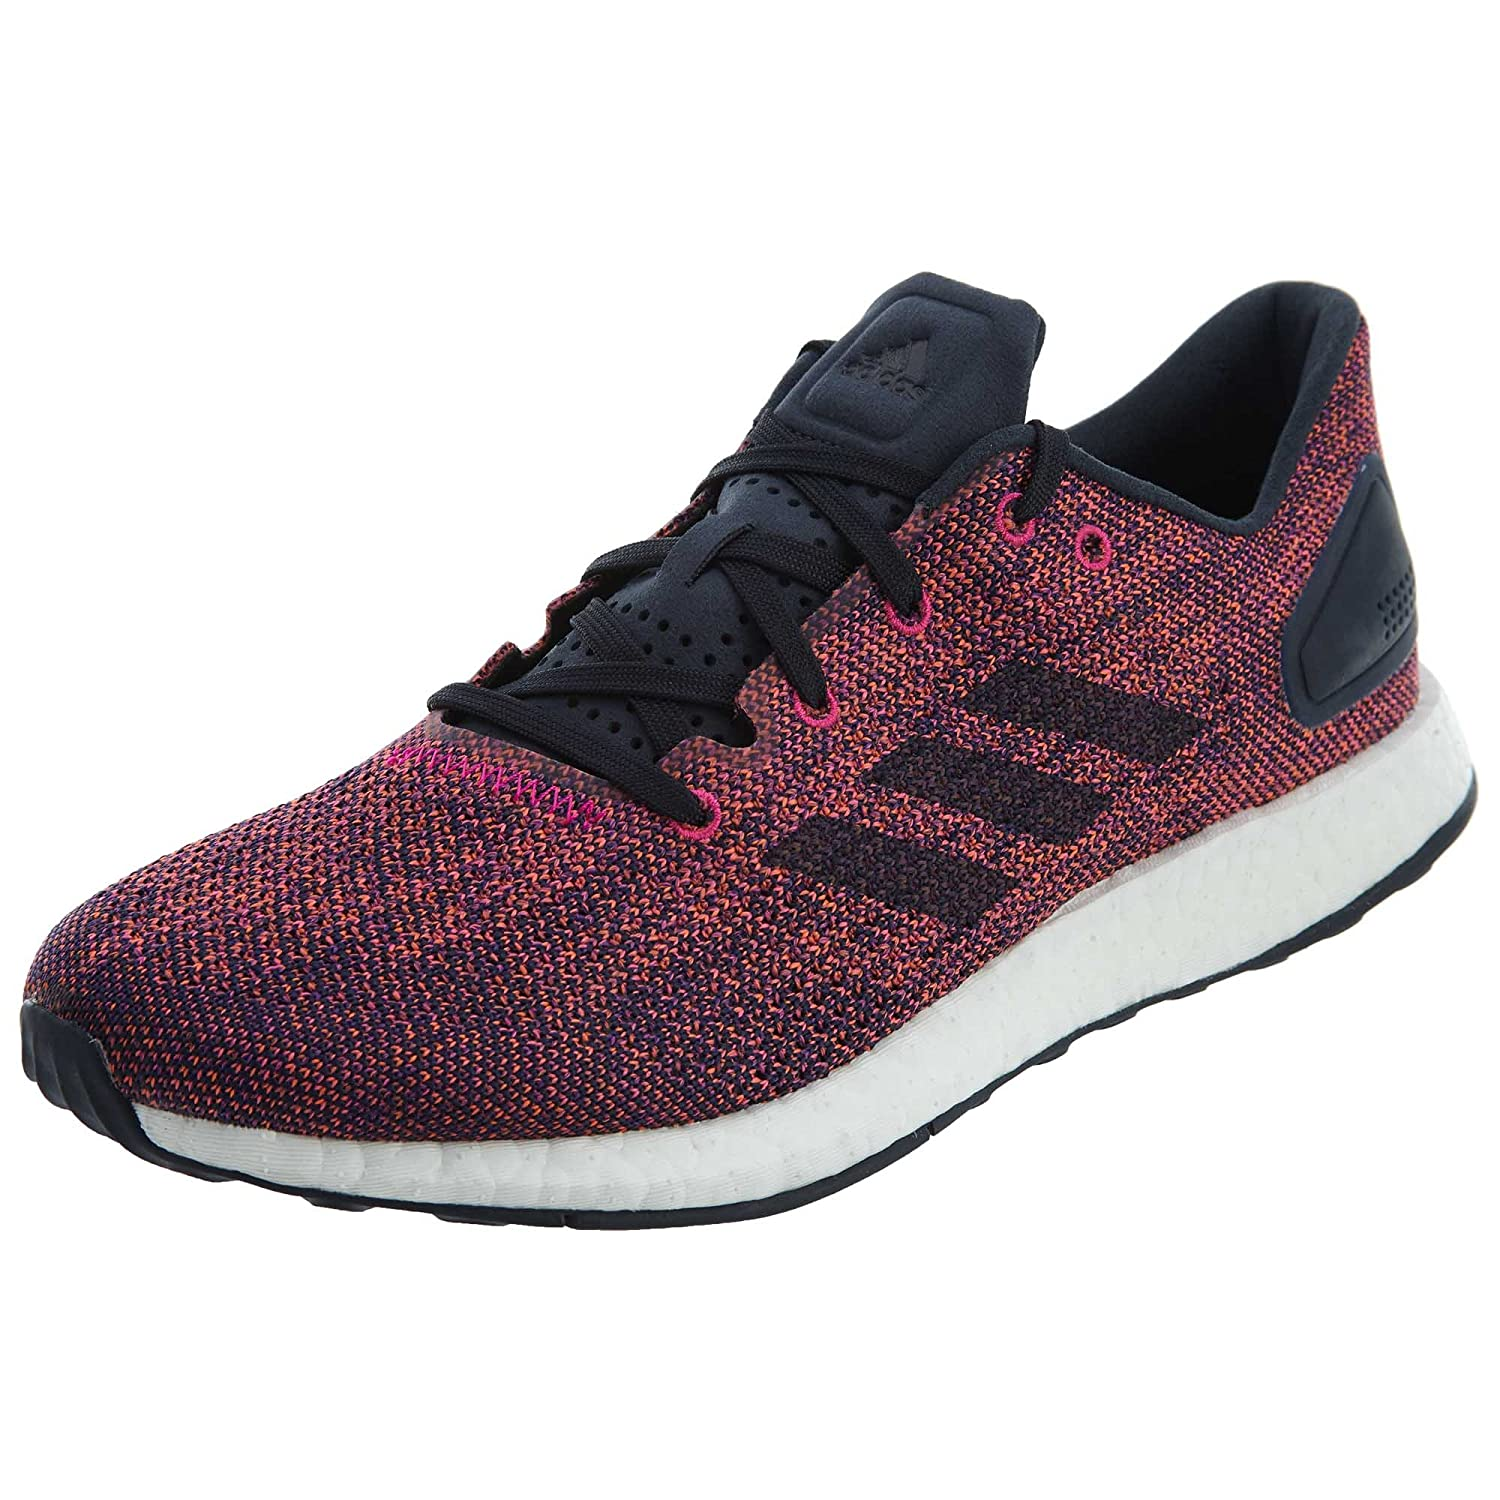 low priced f8be4 10817 Amazon.com | adidas Running Mens Pureboost DPR LTD | Road ...